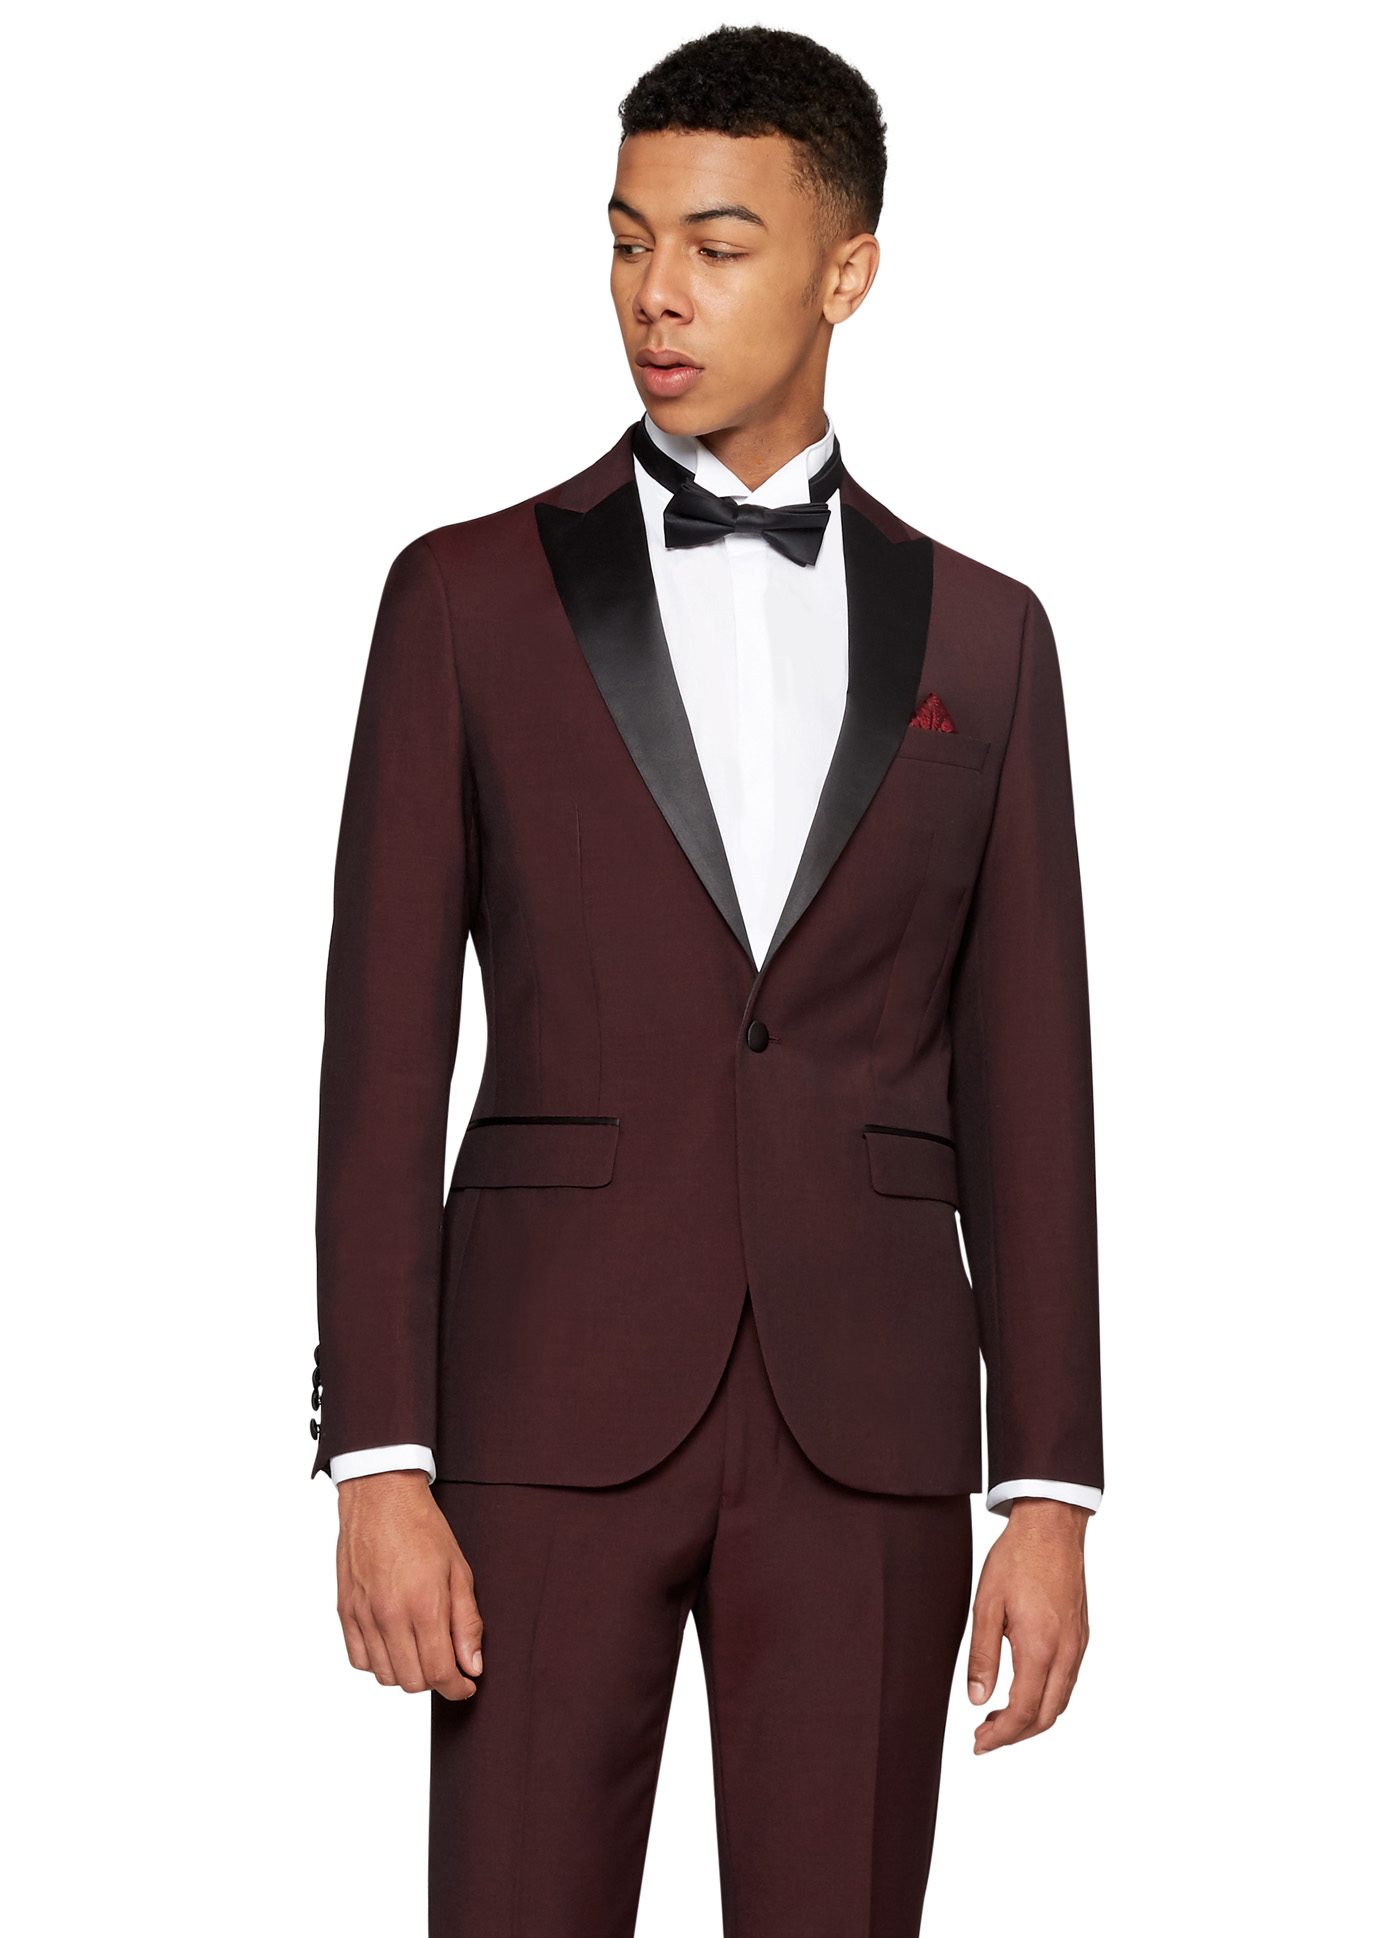 Buy low price, high quality mens red suit with worldwide shipping on private-dev.tk